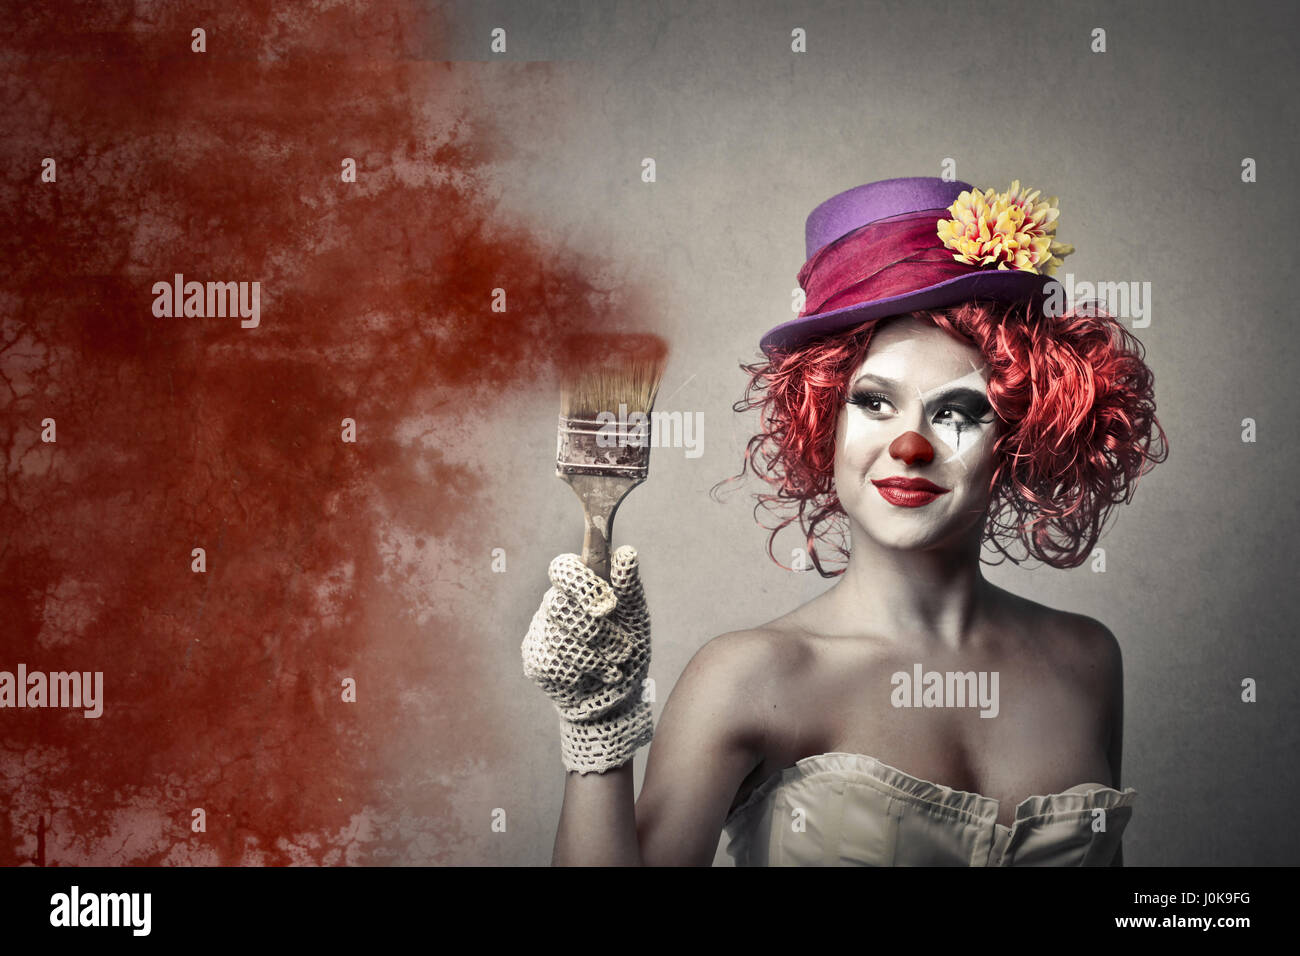 Femme clown avec le pinceau Photo Stock